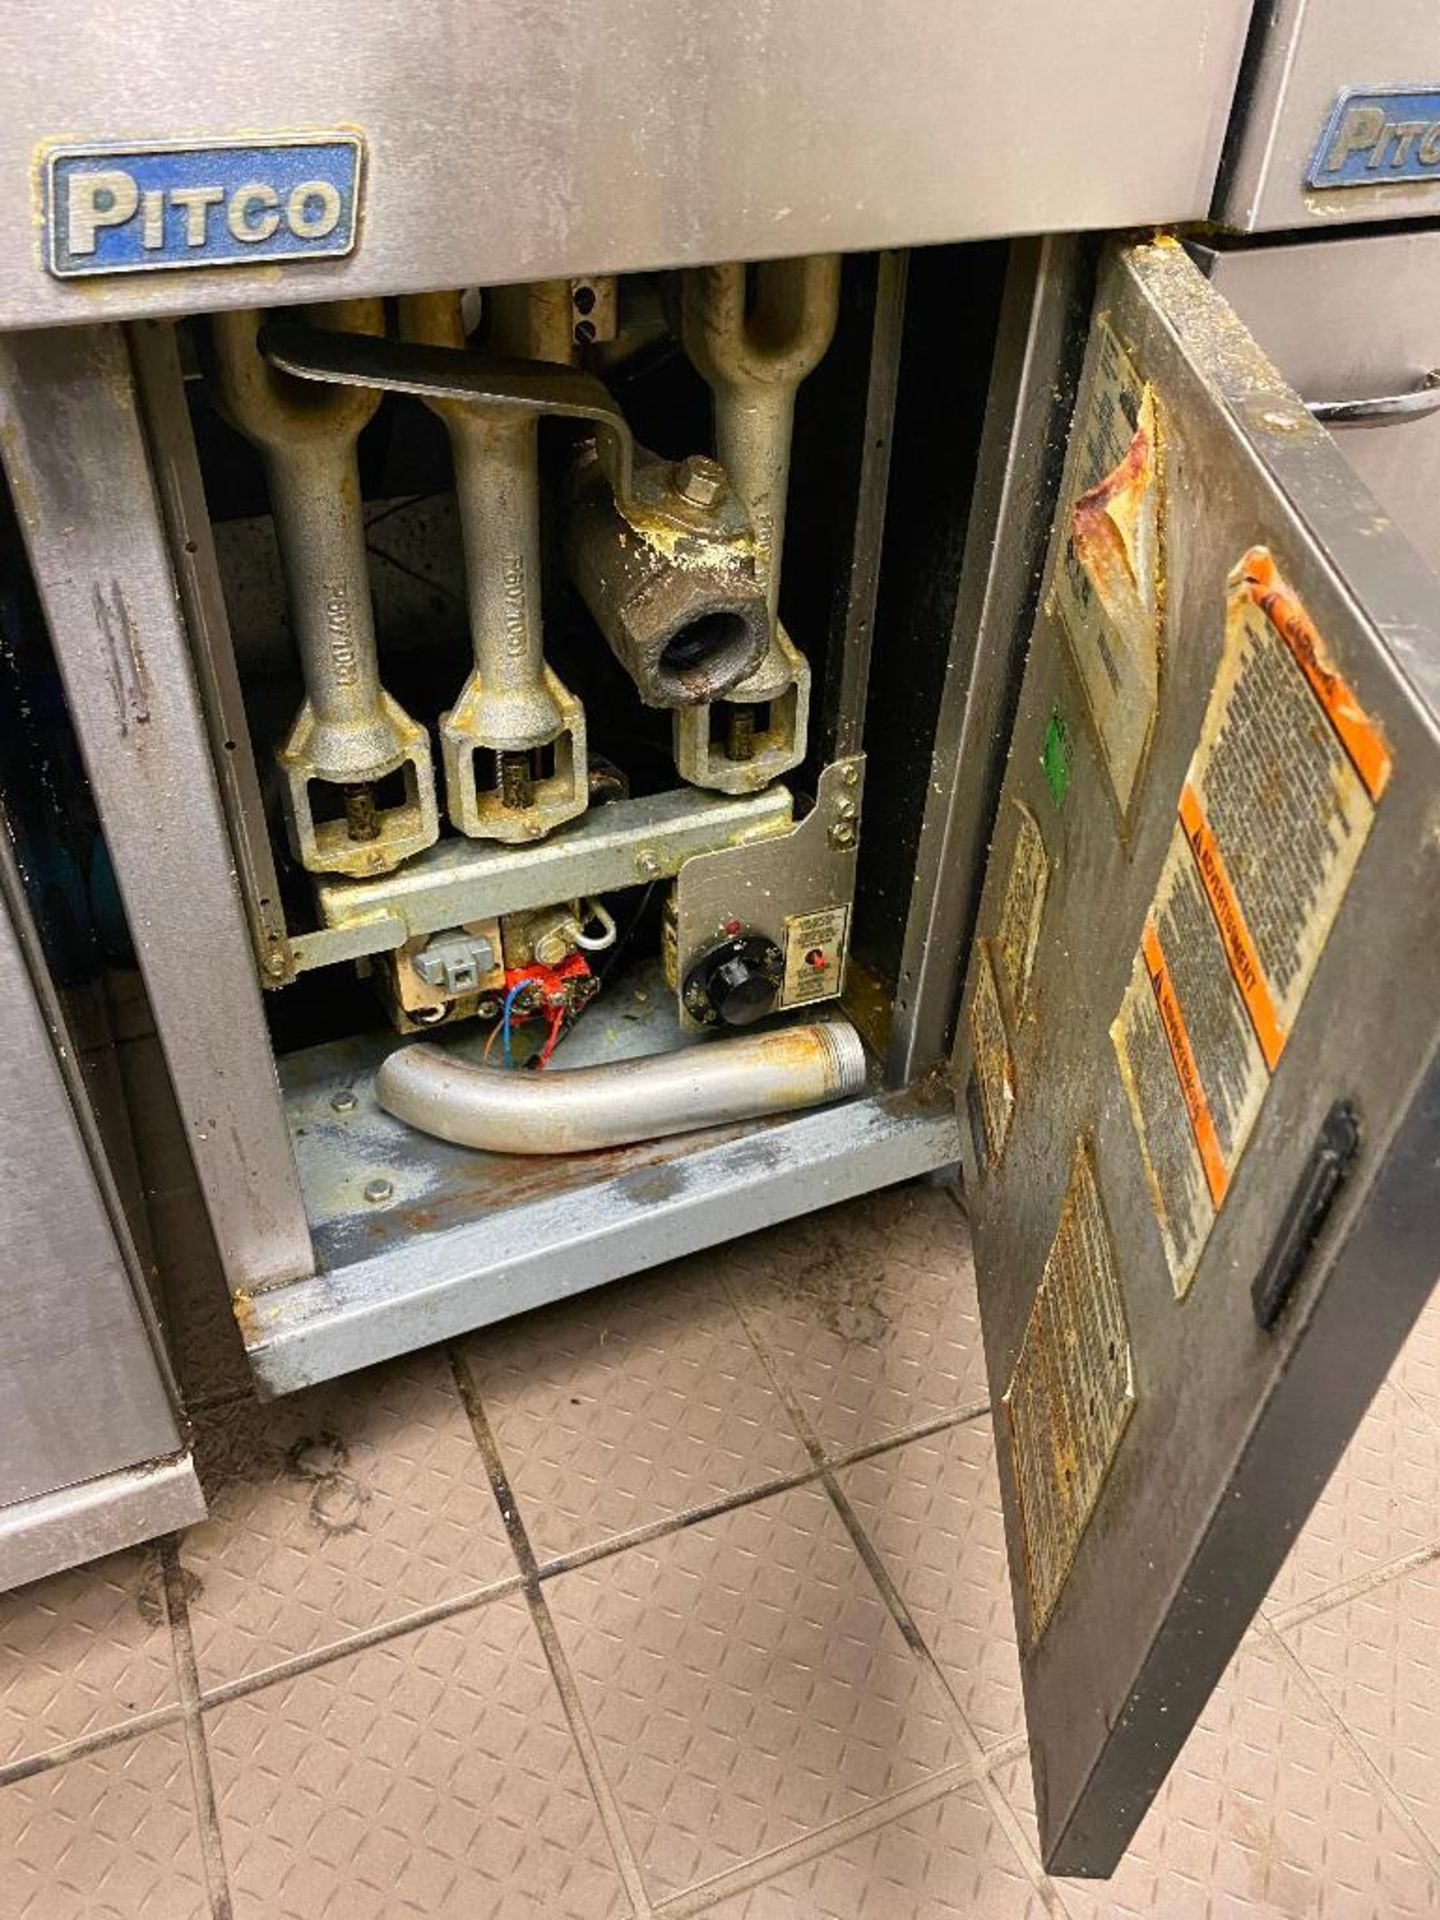 PITCO 40C+ FLOOR TUBE FIRED NATURAL GAS FRYER - NOTE: REQUIRES DISCONNECT,PLEASE INSPECT - Image 3 of 4